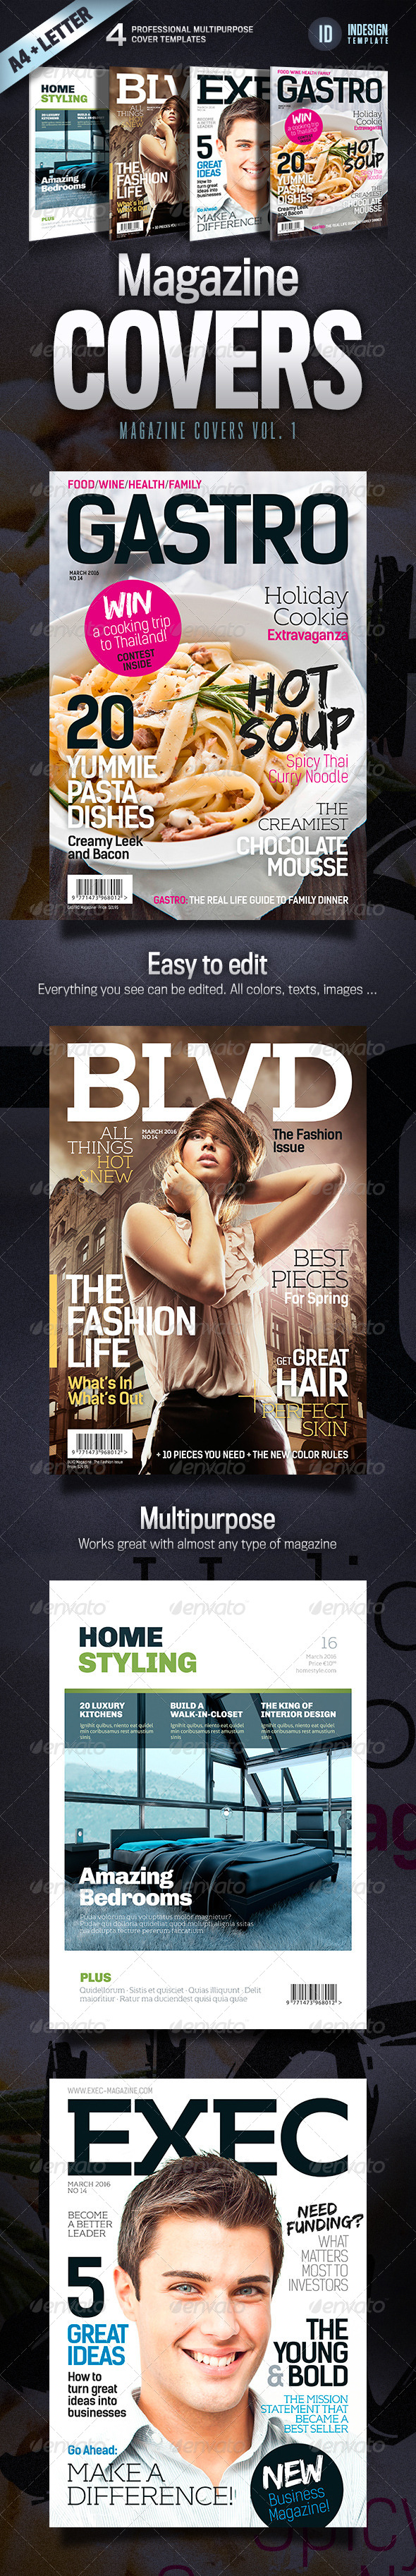 Magazine Covers - Vol. 1 - Magazines Print Templates